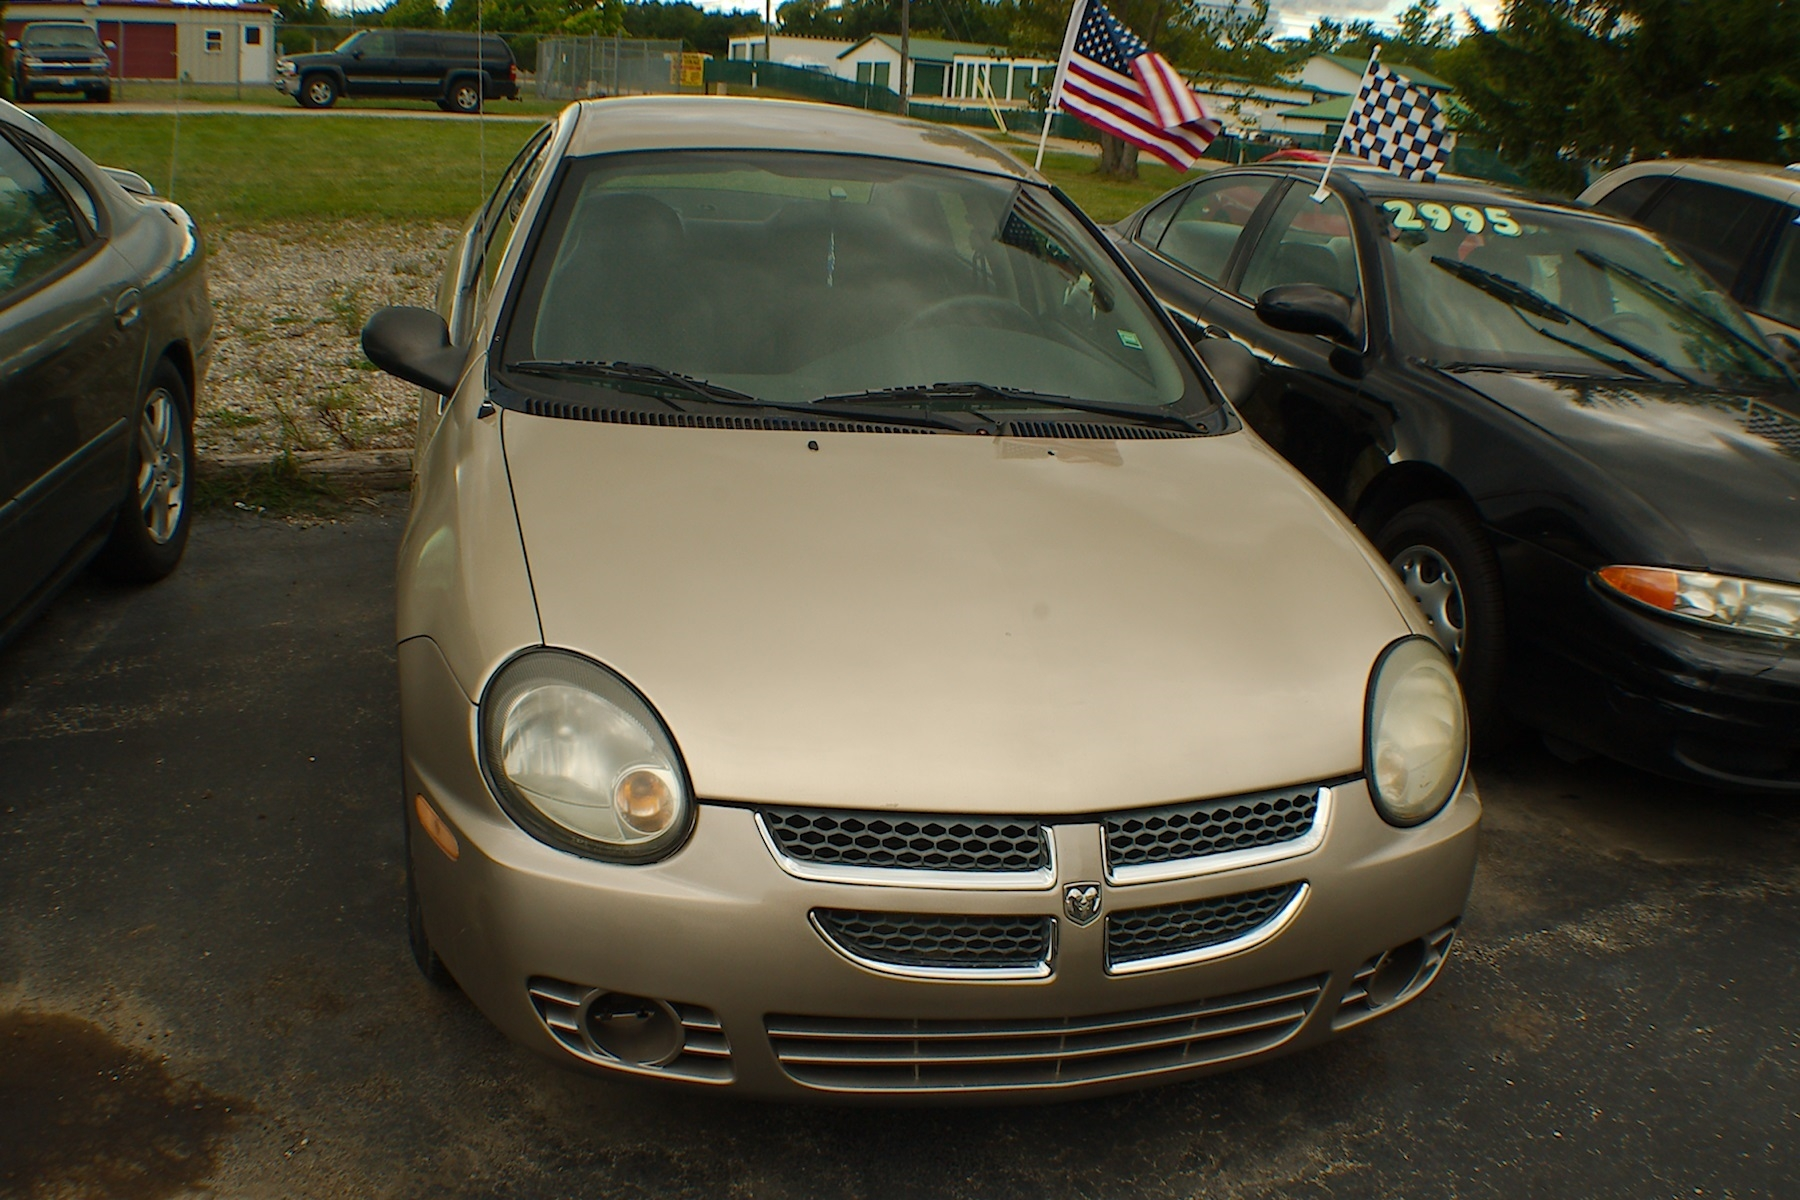 2003 Dodge Neon Pewter Sedan Used Car Sale Gurnee Kenosha Mchenry Chicago Illinois